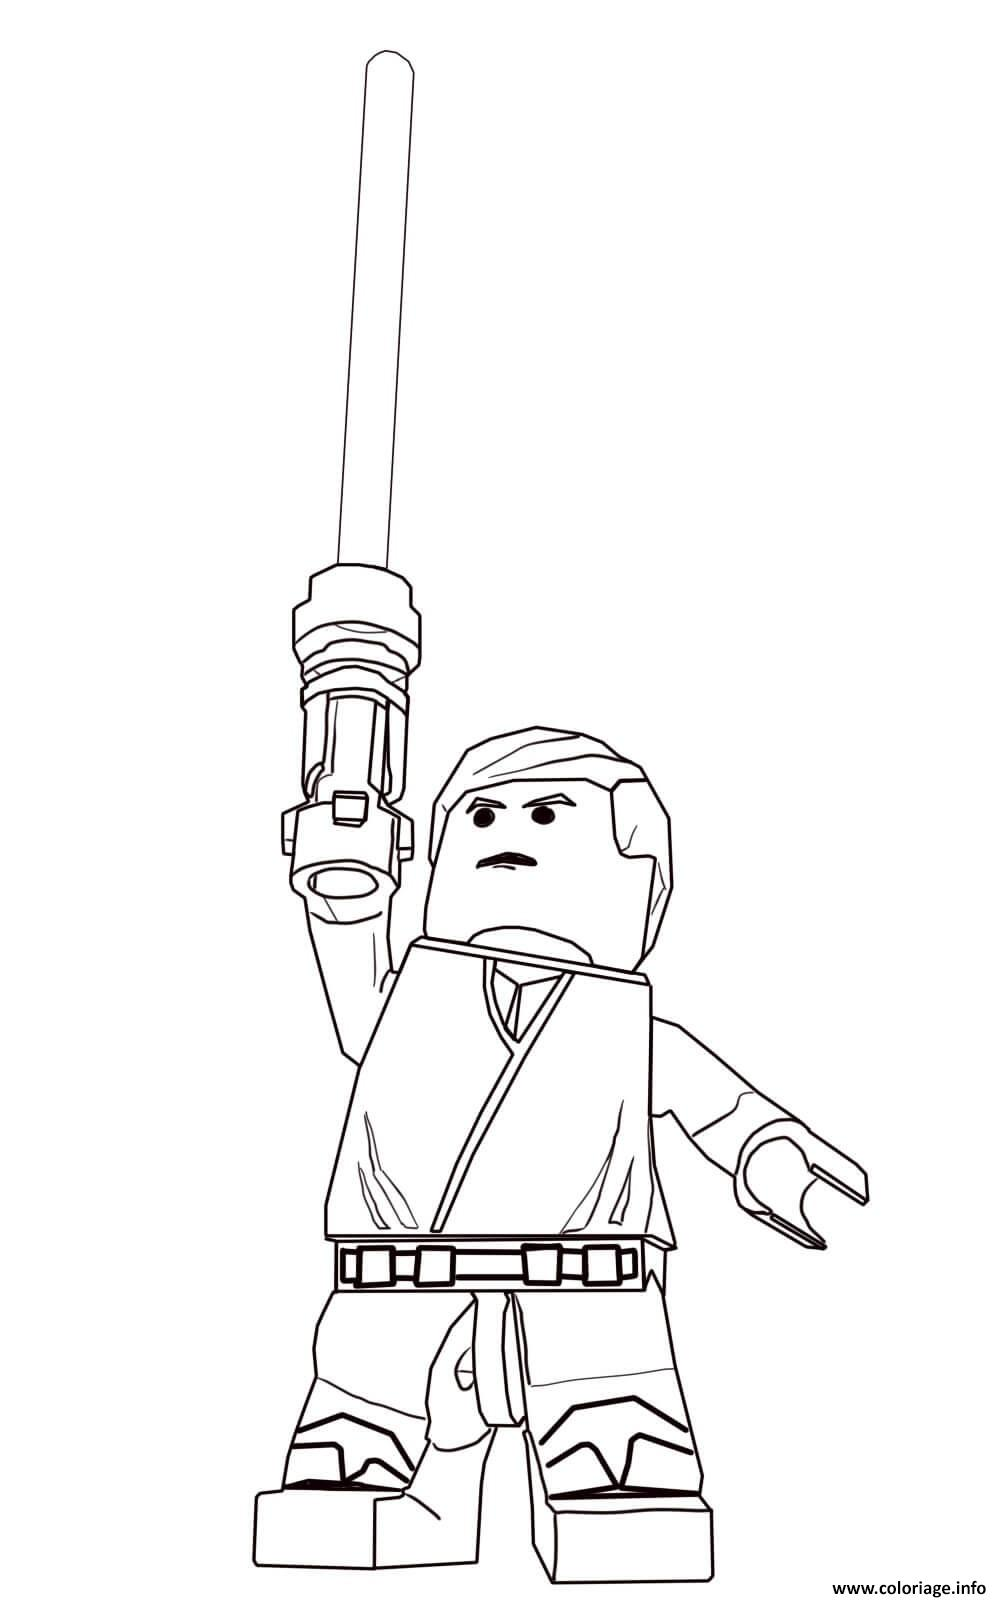 Coloriage Lego Star Wars Luke Skywalker Dessin